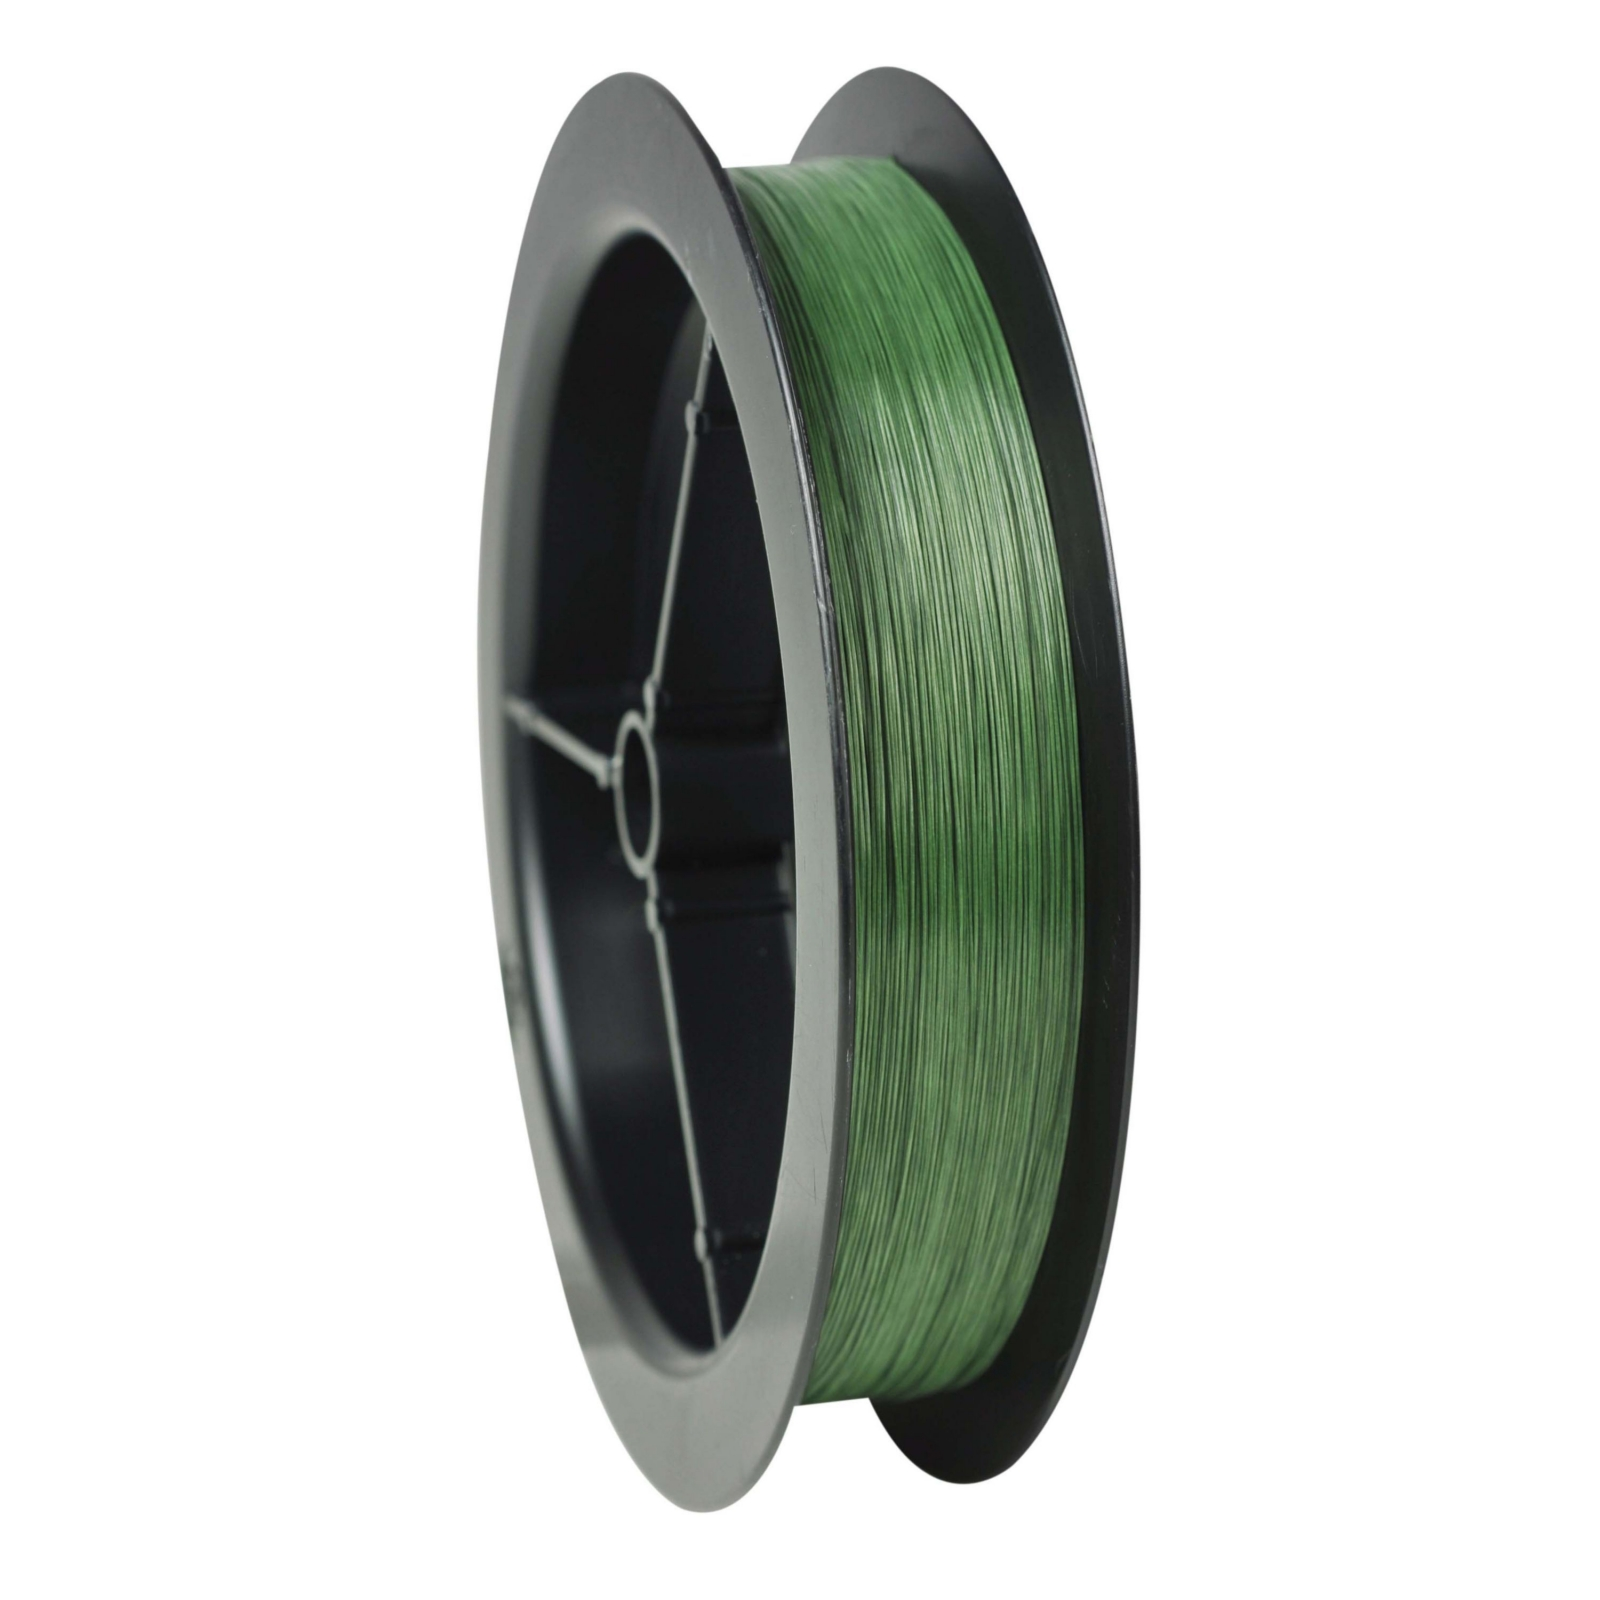 Spiderwire  EZ Braid Line Moss Green 10-pound Filler Spool 110 Yards